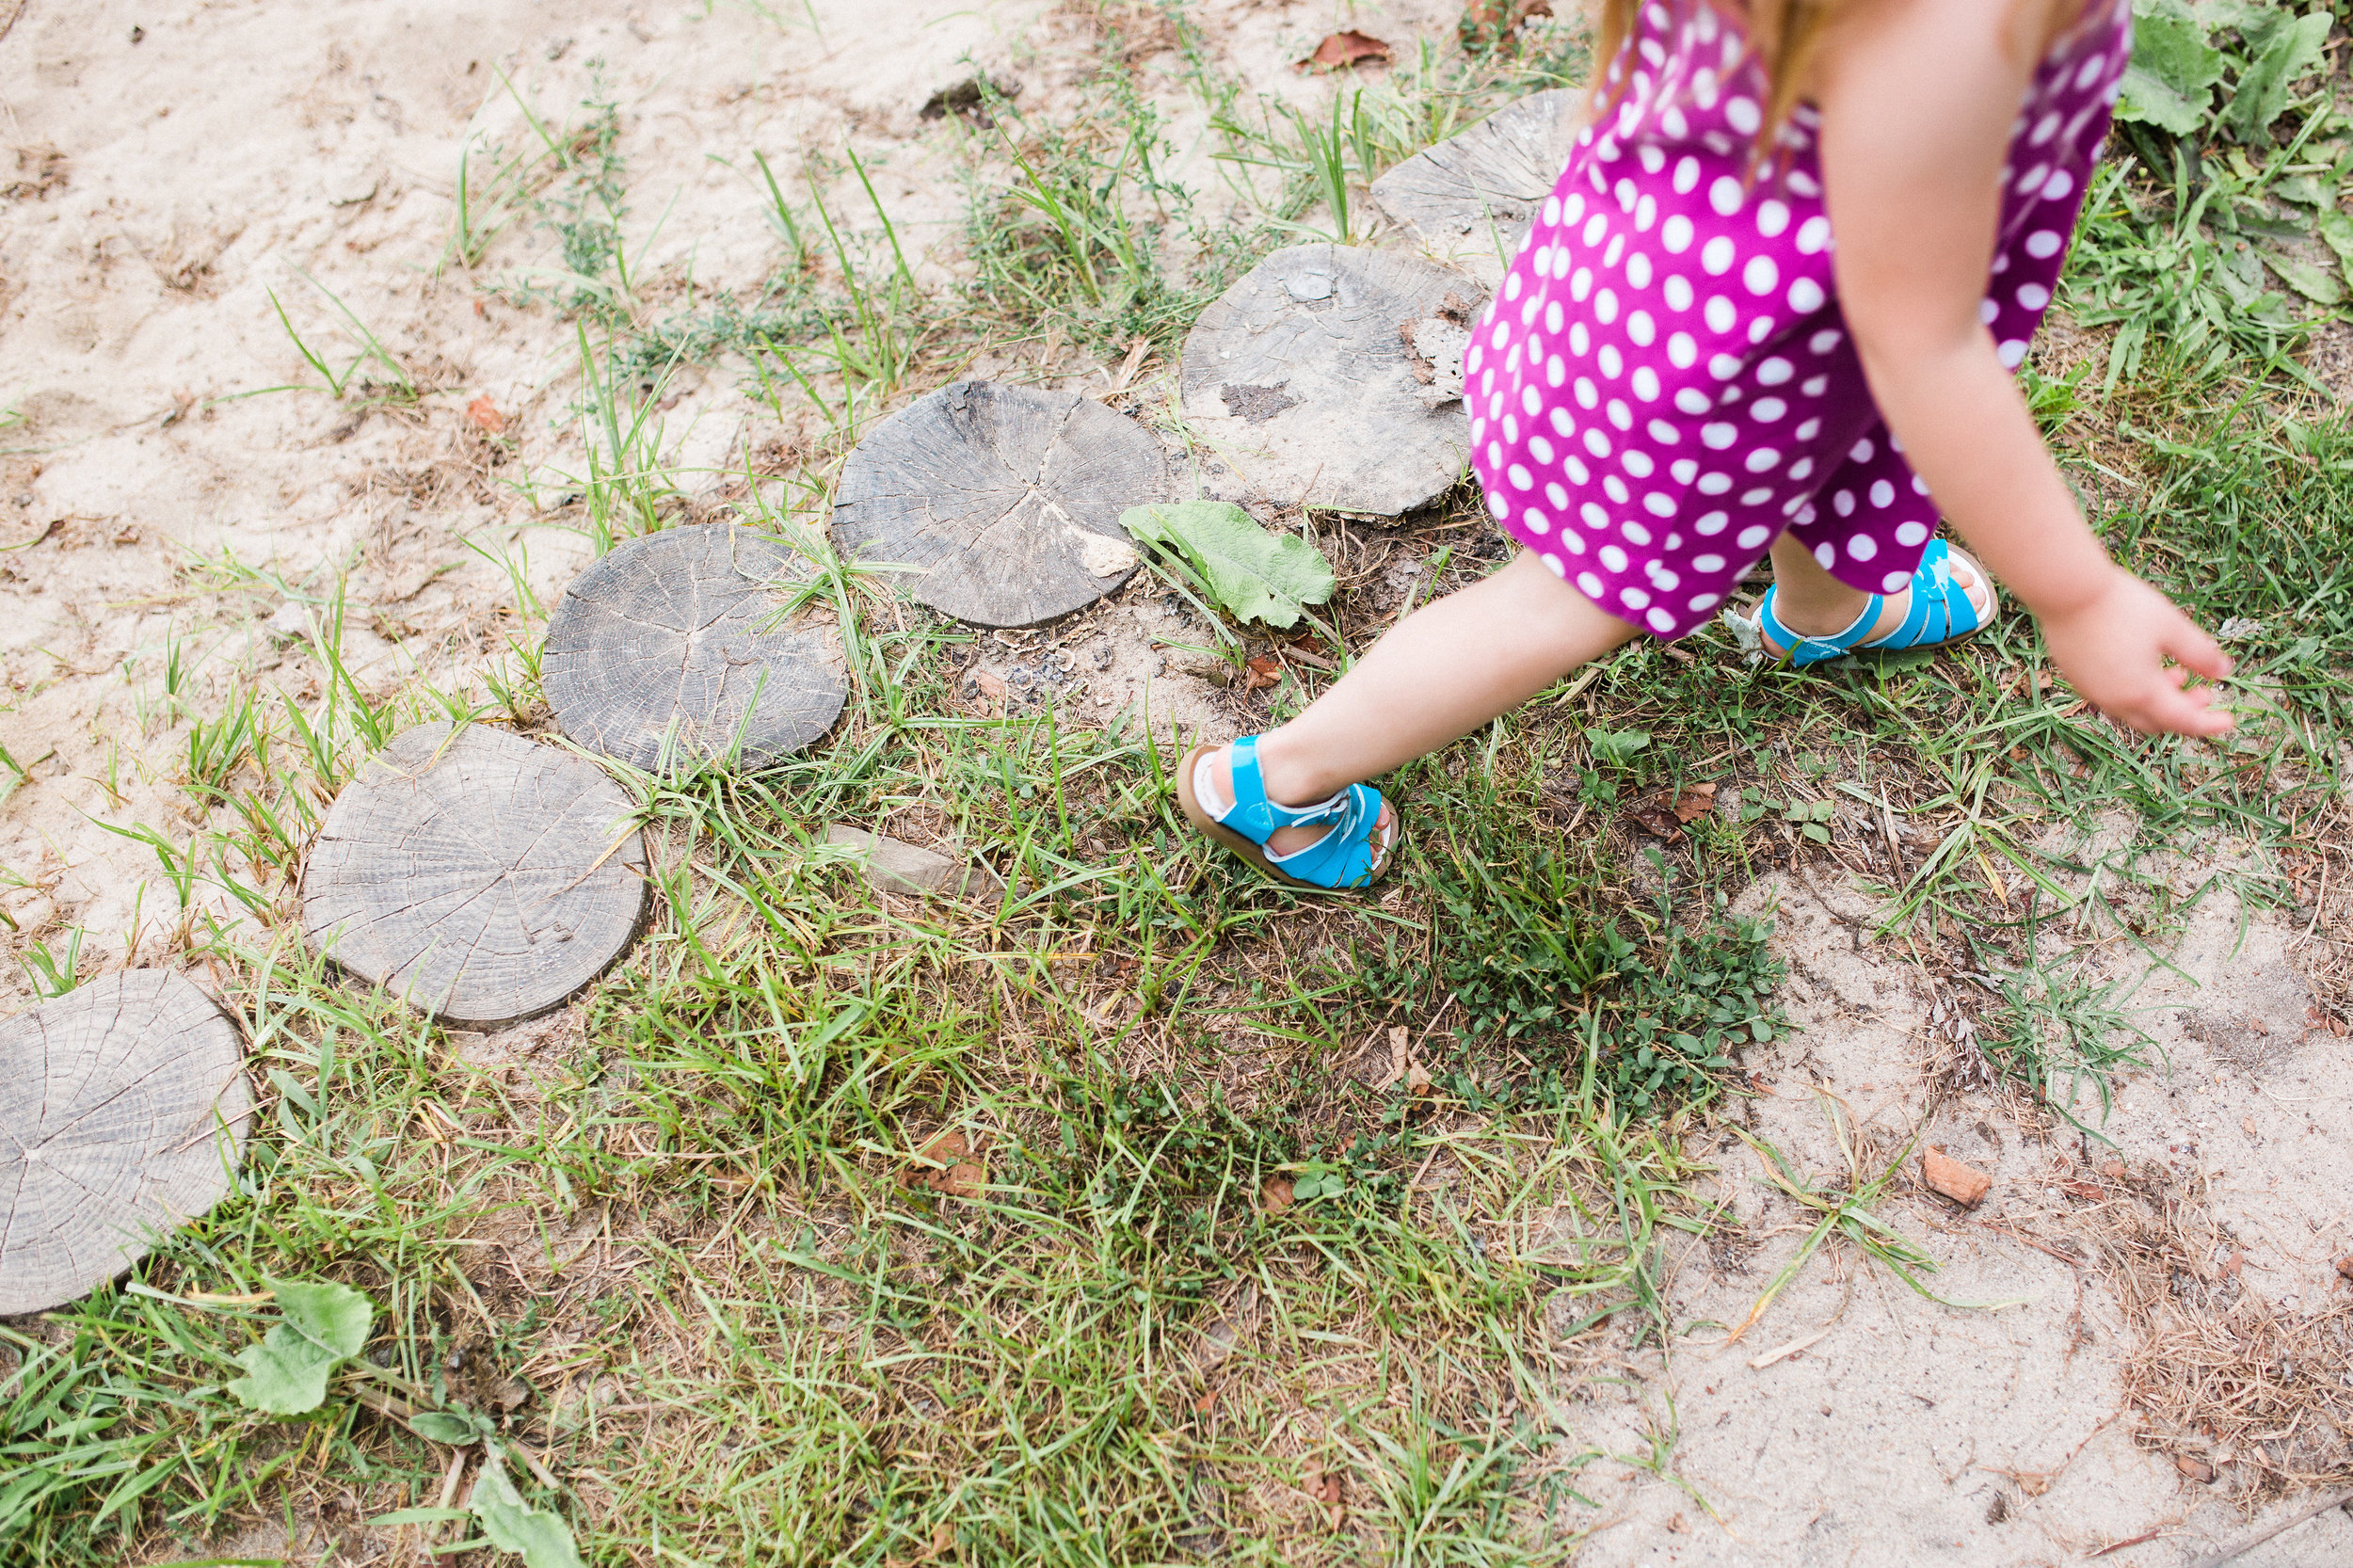 prospect-park-family-photography_natural-playground-23.jpg